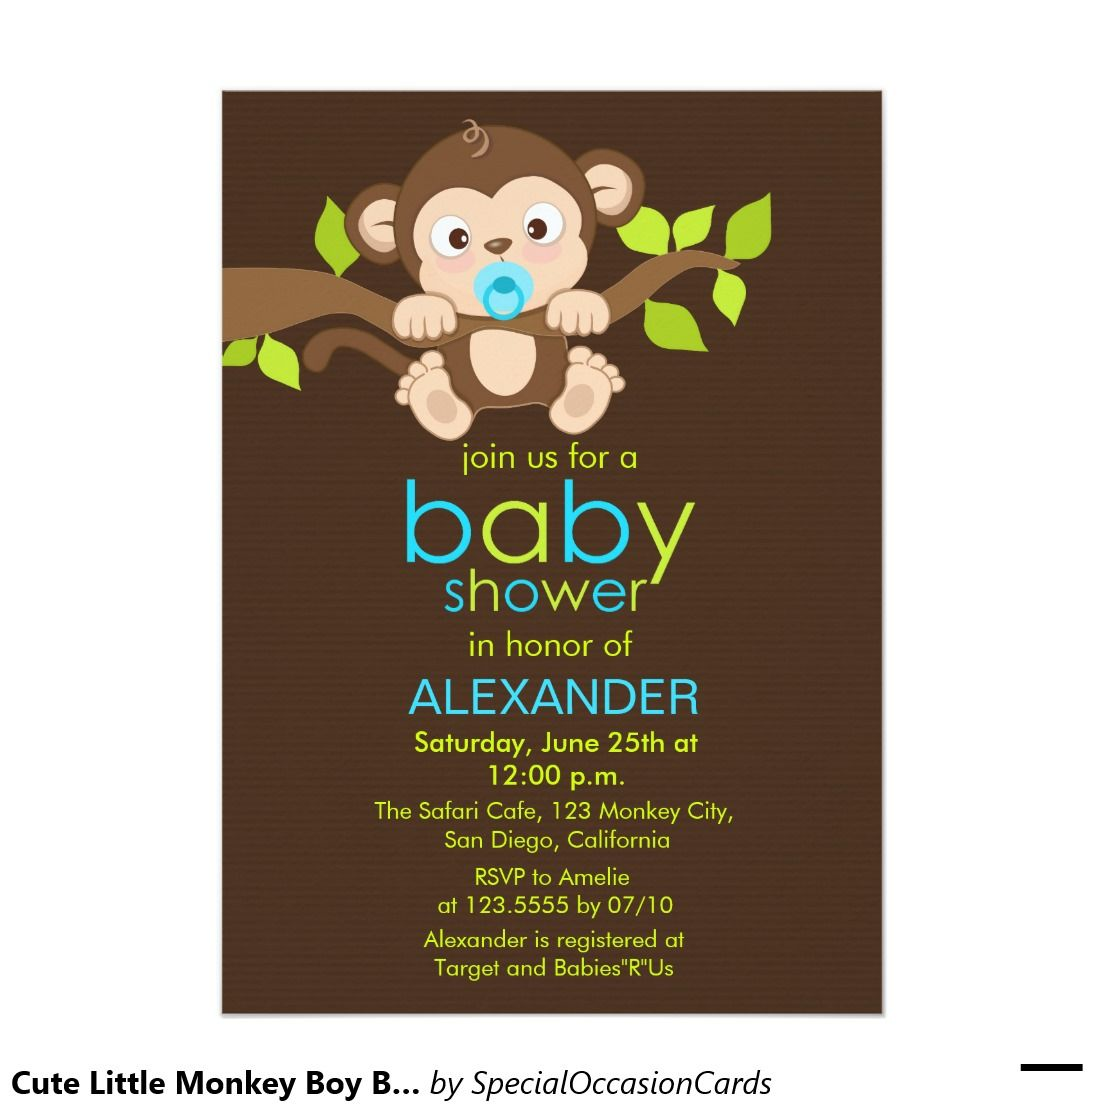 Cute little monkey boy baby shower invitation boy baby showers cute little monkey boy baby shower invitation filmwisefo Image collections